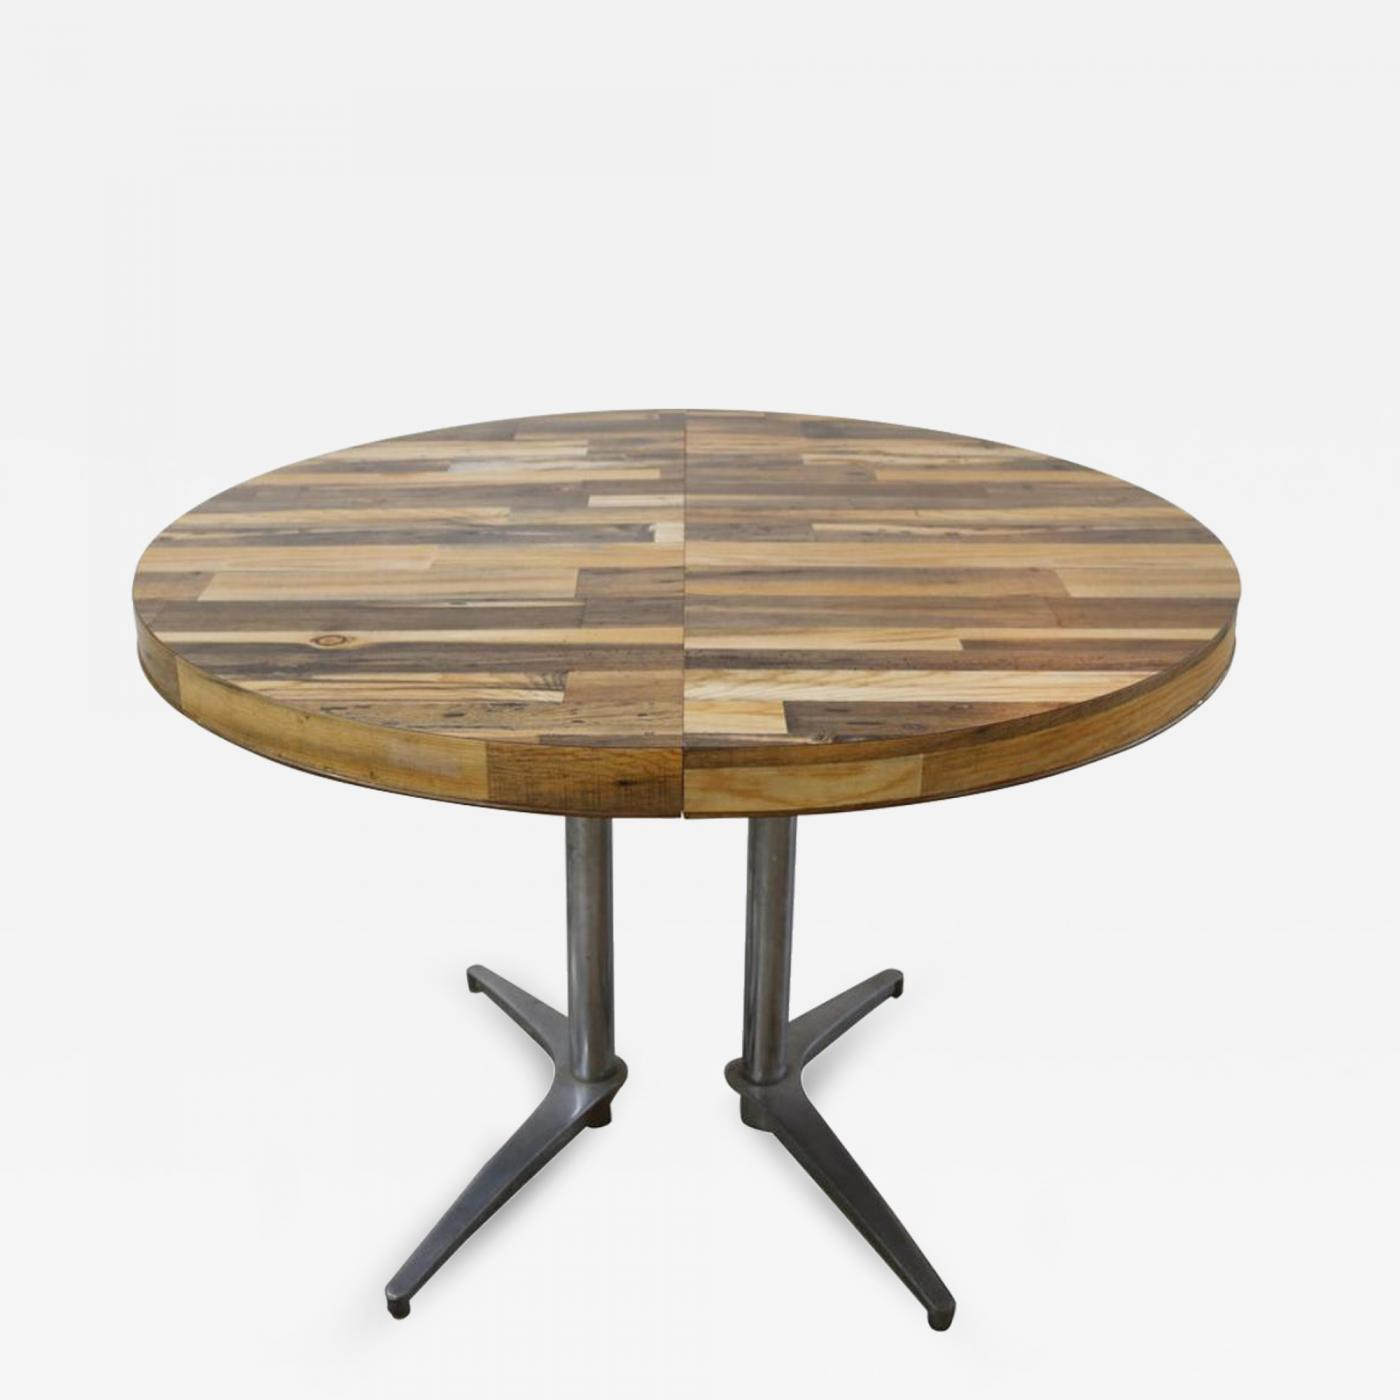 Round Reclaimed Wood Extension Dining Table